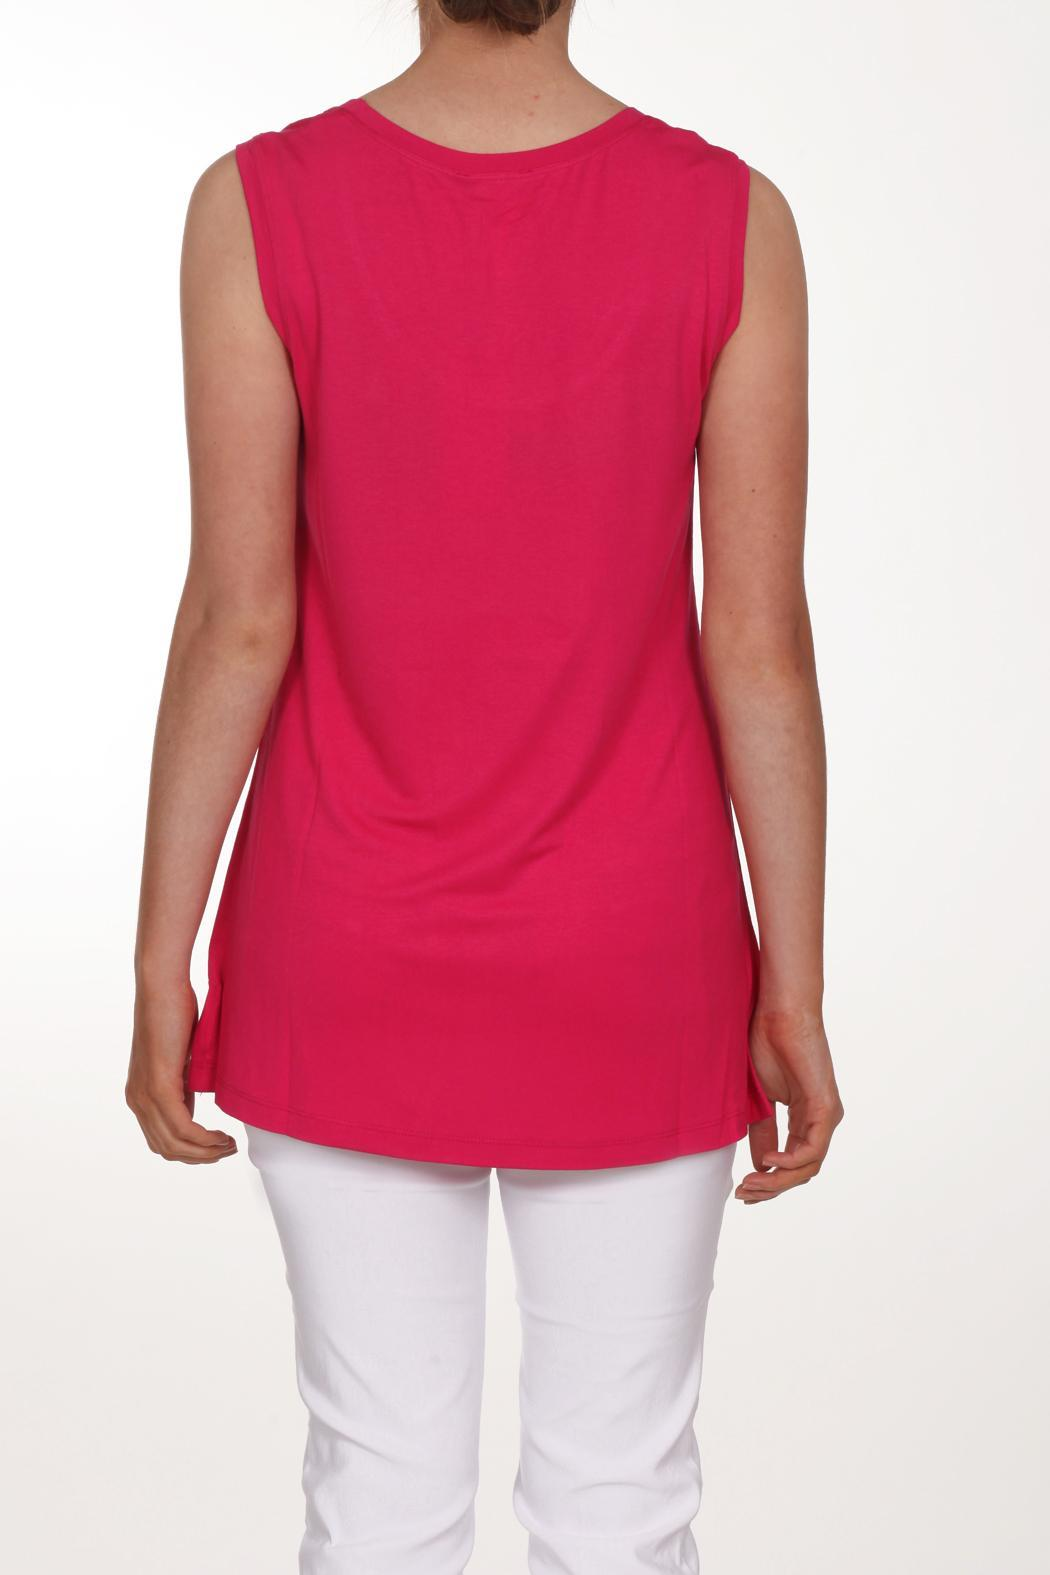 Neon Buddha Pink Sleeveless Top - Front Full Image